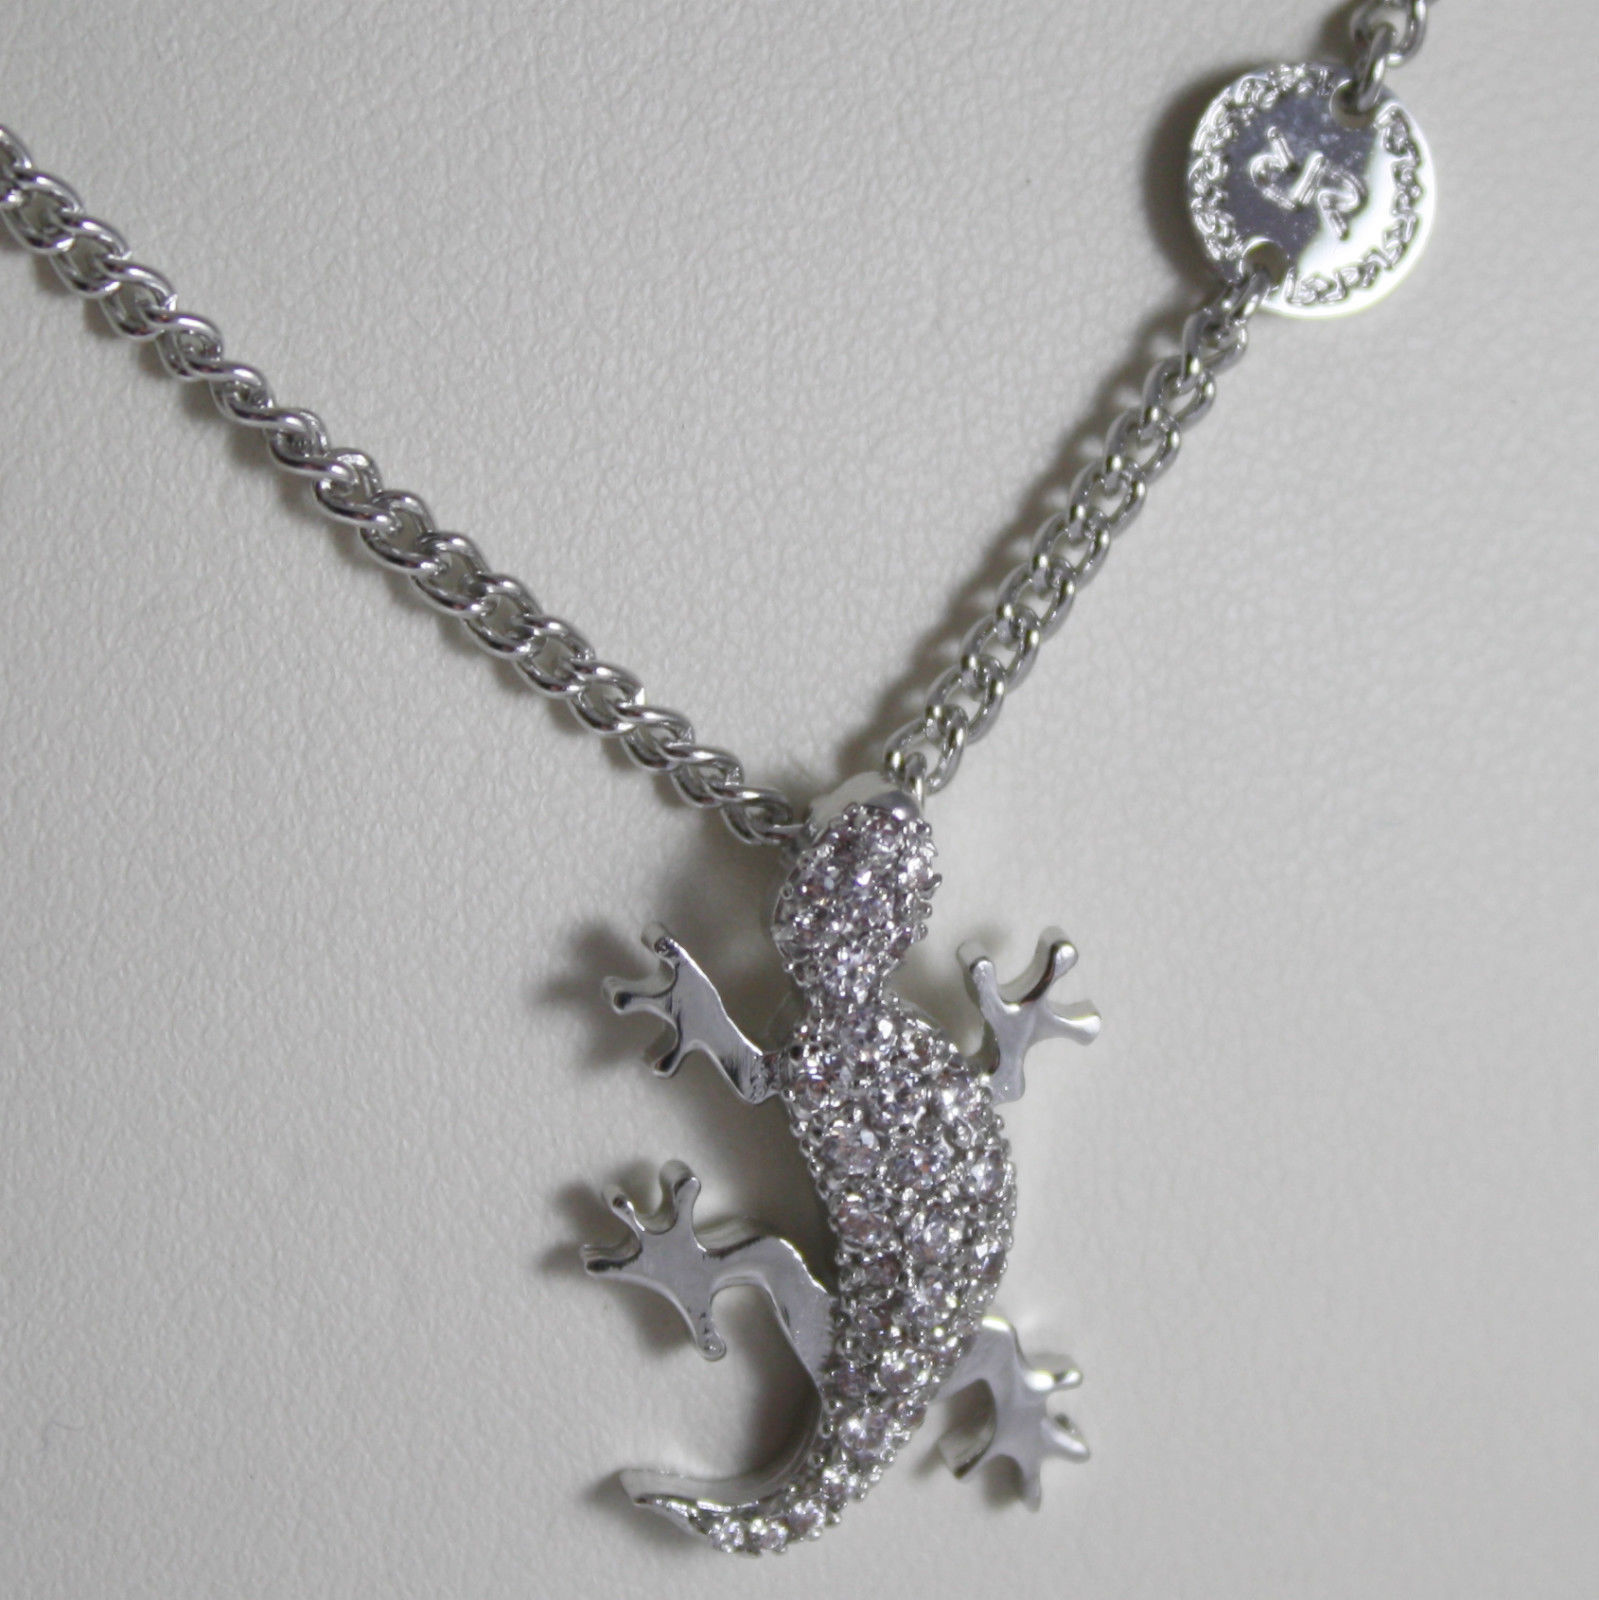 RHODIUM BRONZE NECKLACE WITH GECKO B14KBB09 CUBIC ZIRCONIA REBECCA MADE IN ITAL